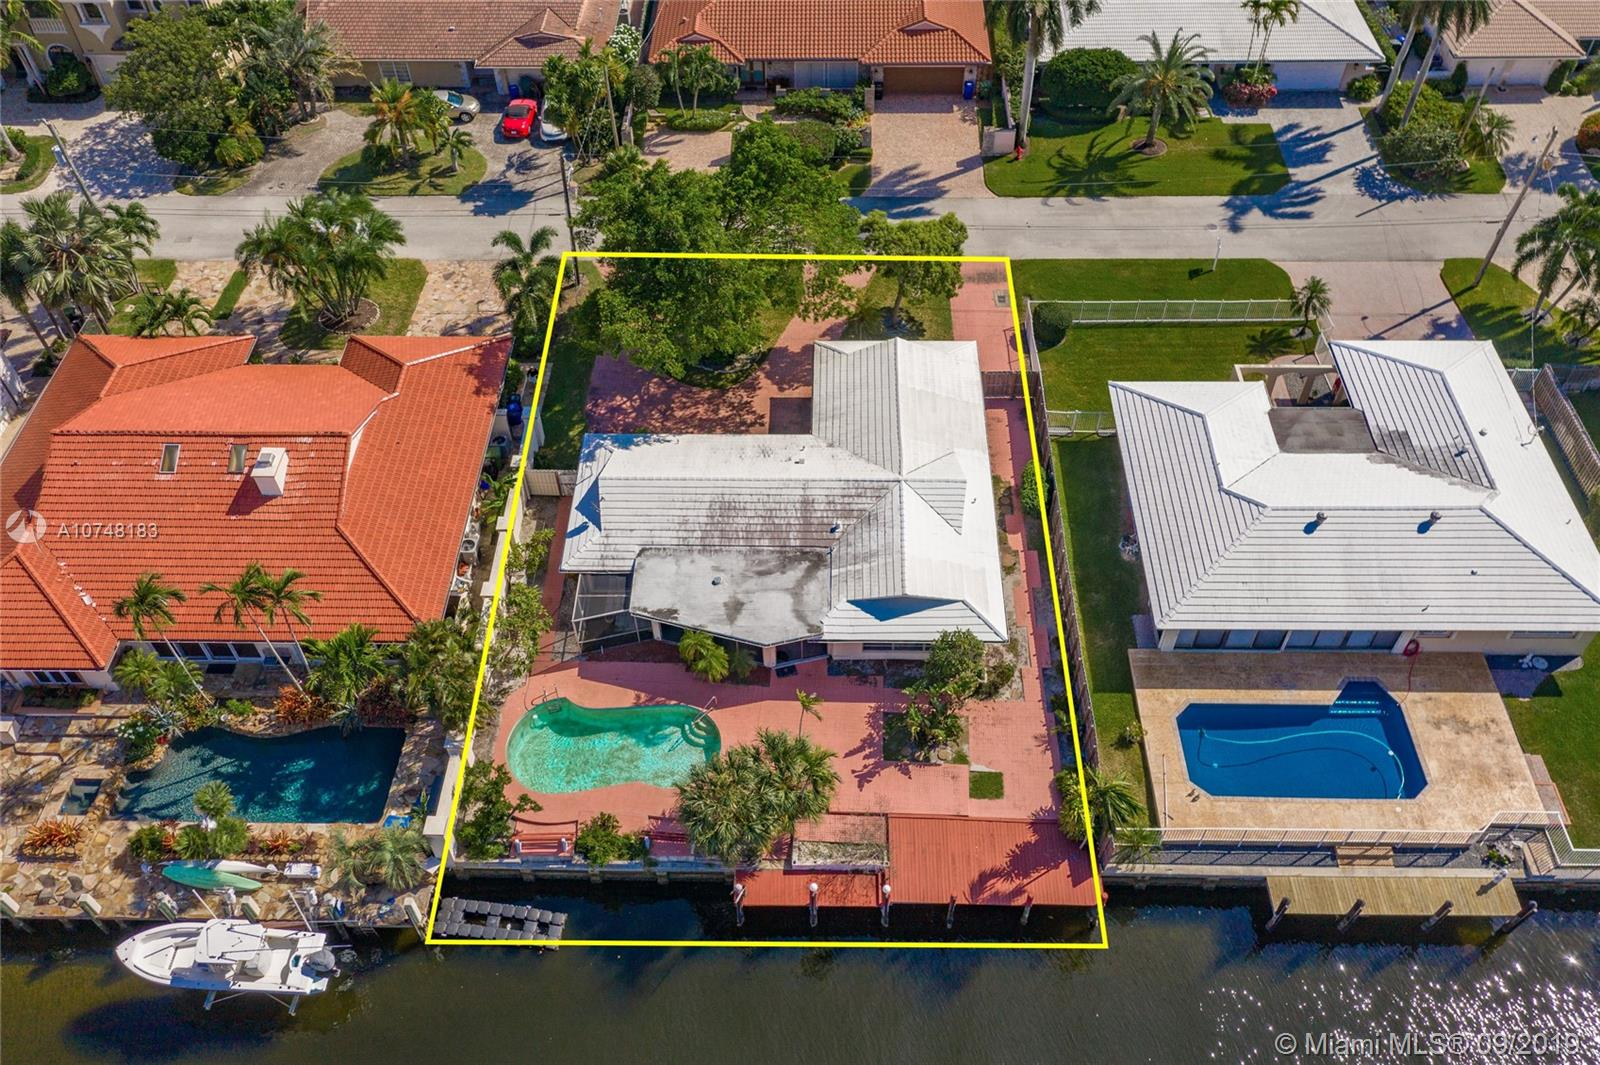 Generously sized waterfront lot with 85 feet on a deep wide canal, no fixed bridges, only 4 houses away from the point and Intracoastal. Large backyard with pool overlooking canal. Coral ridge area with great schools, centrally located. No fixed bridges and only minutes away from open water.